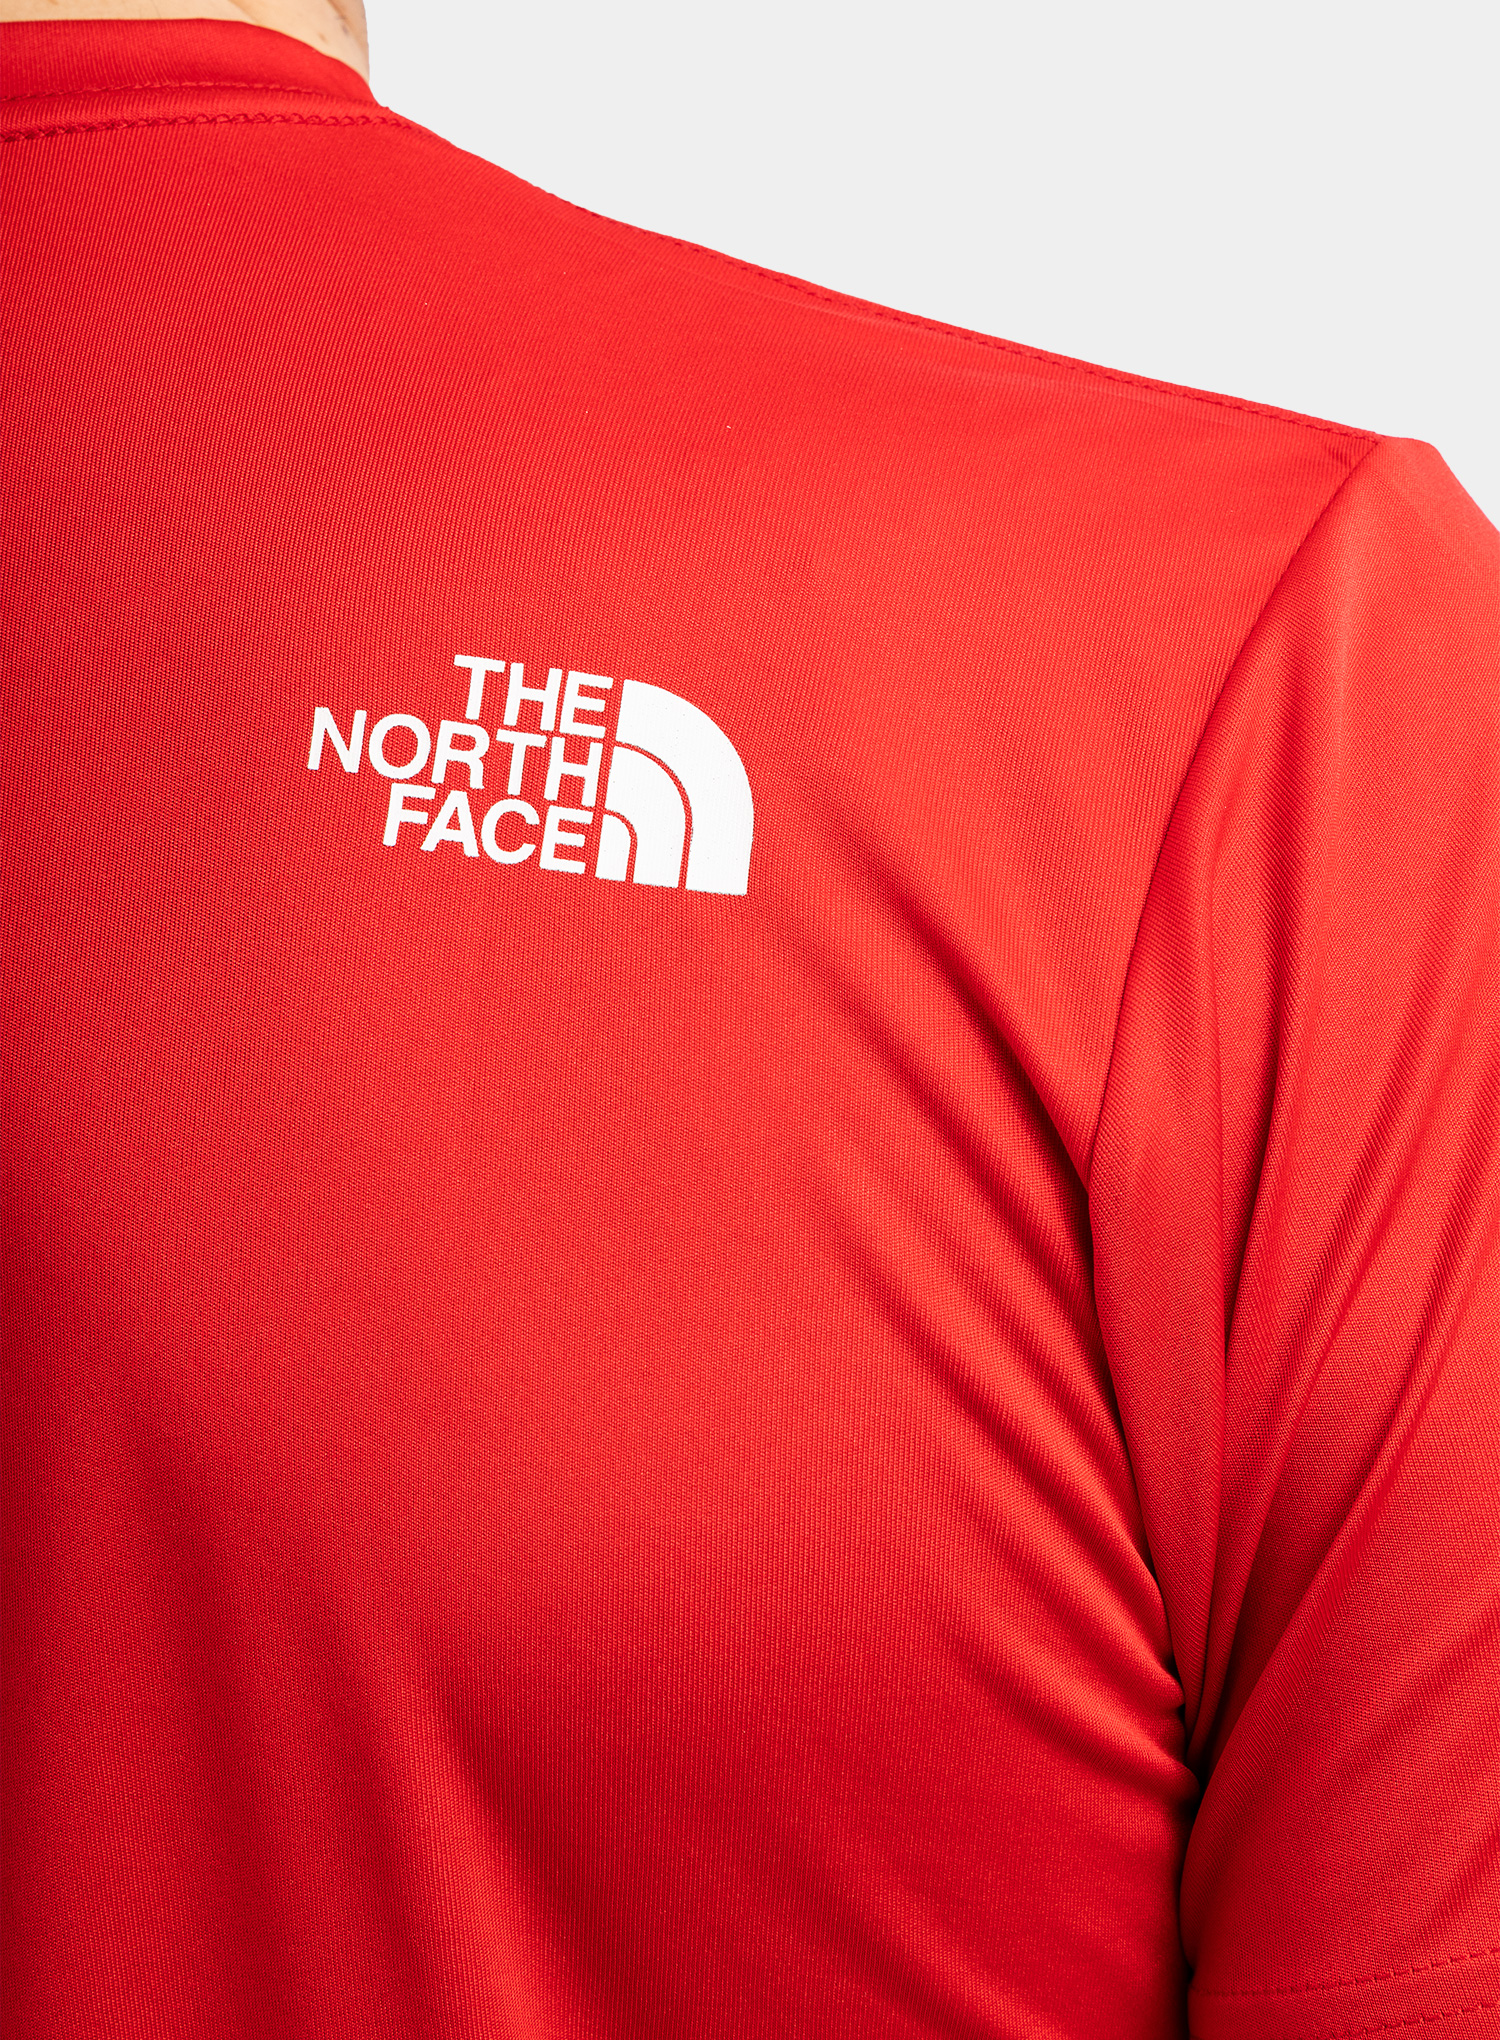 Koszulka The North Face Reaxion Easy Tee - tnf red - zdjęcie nr. 7